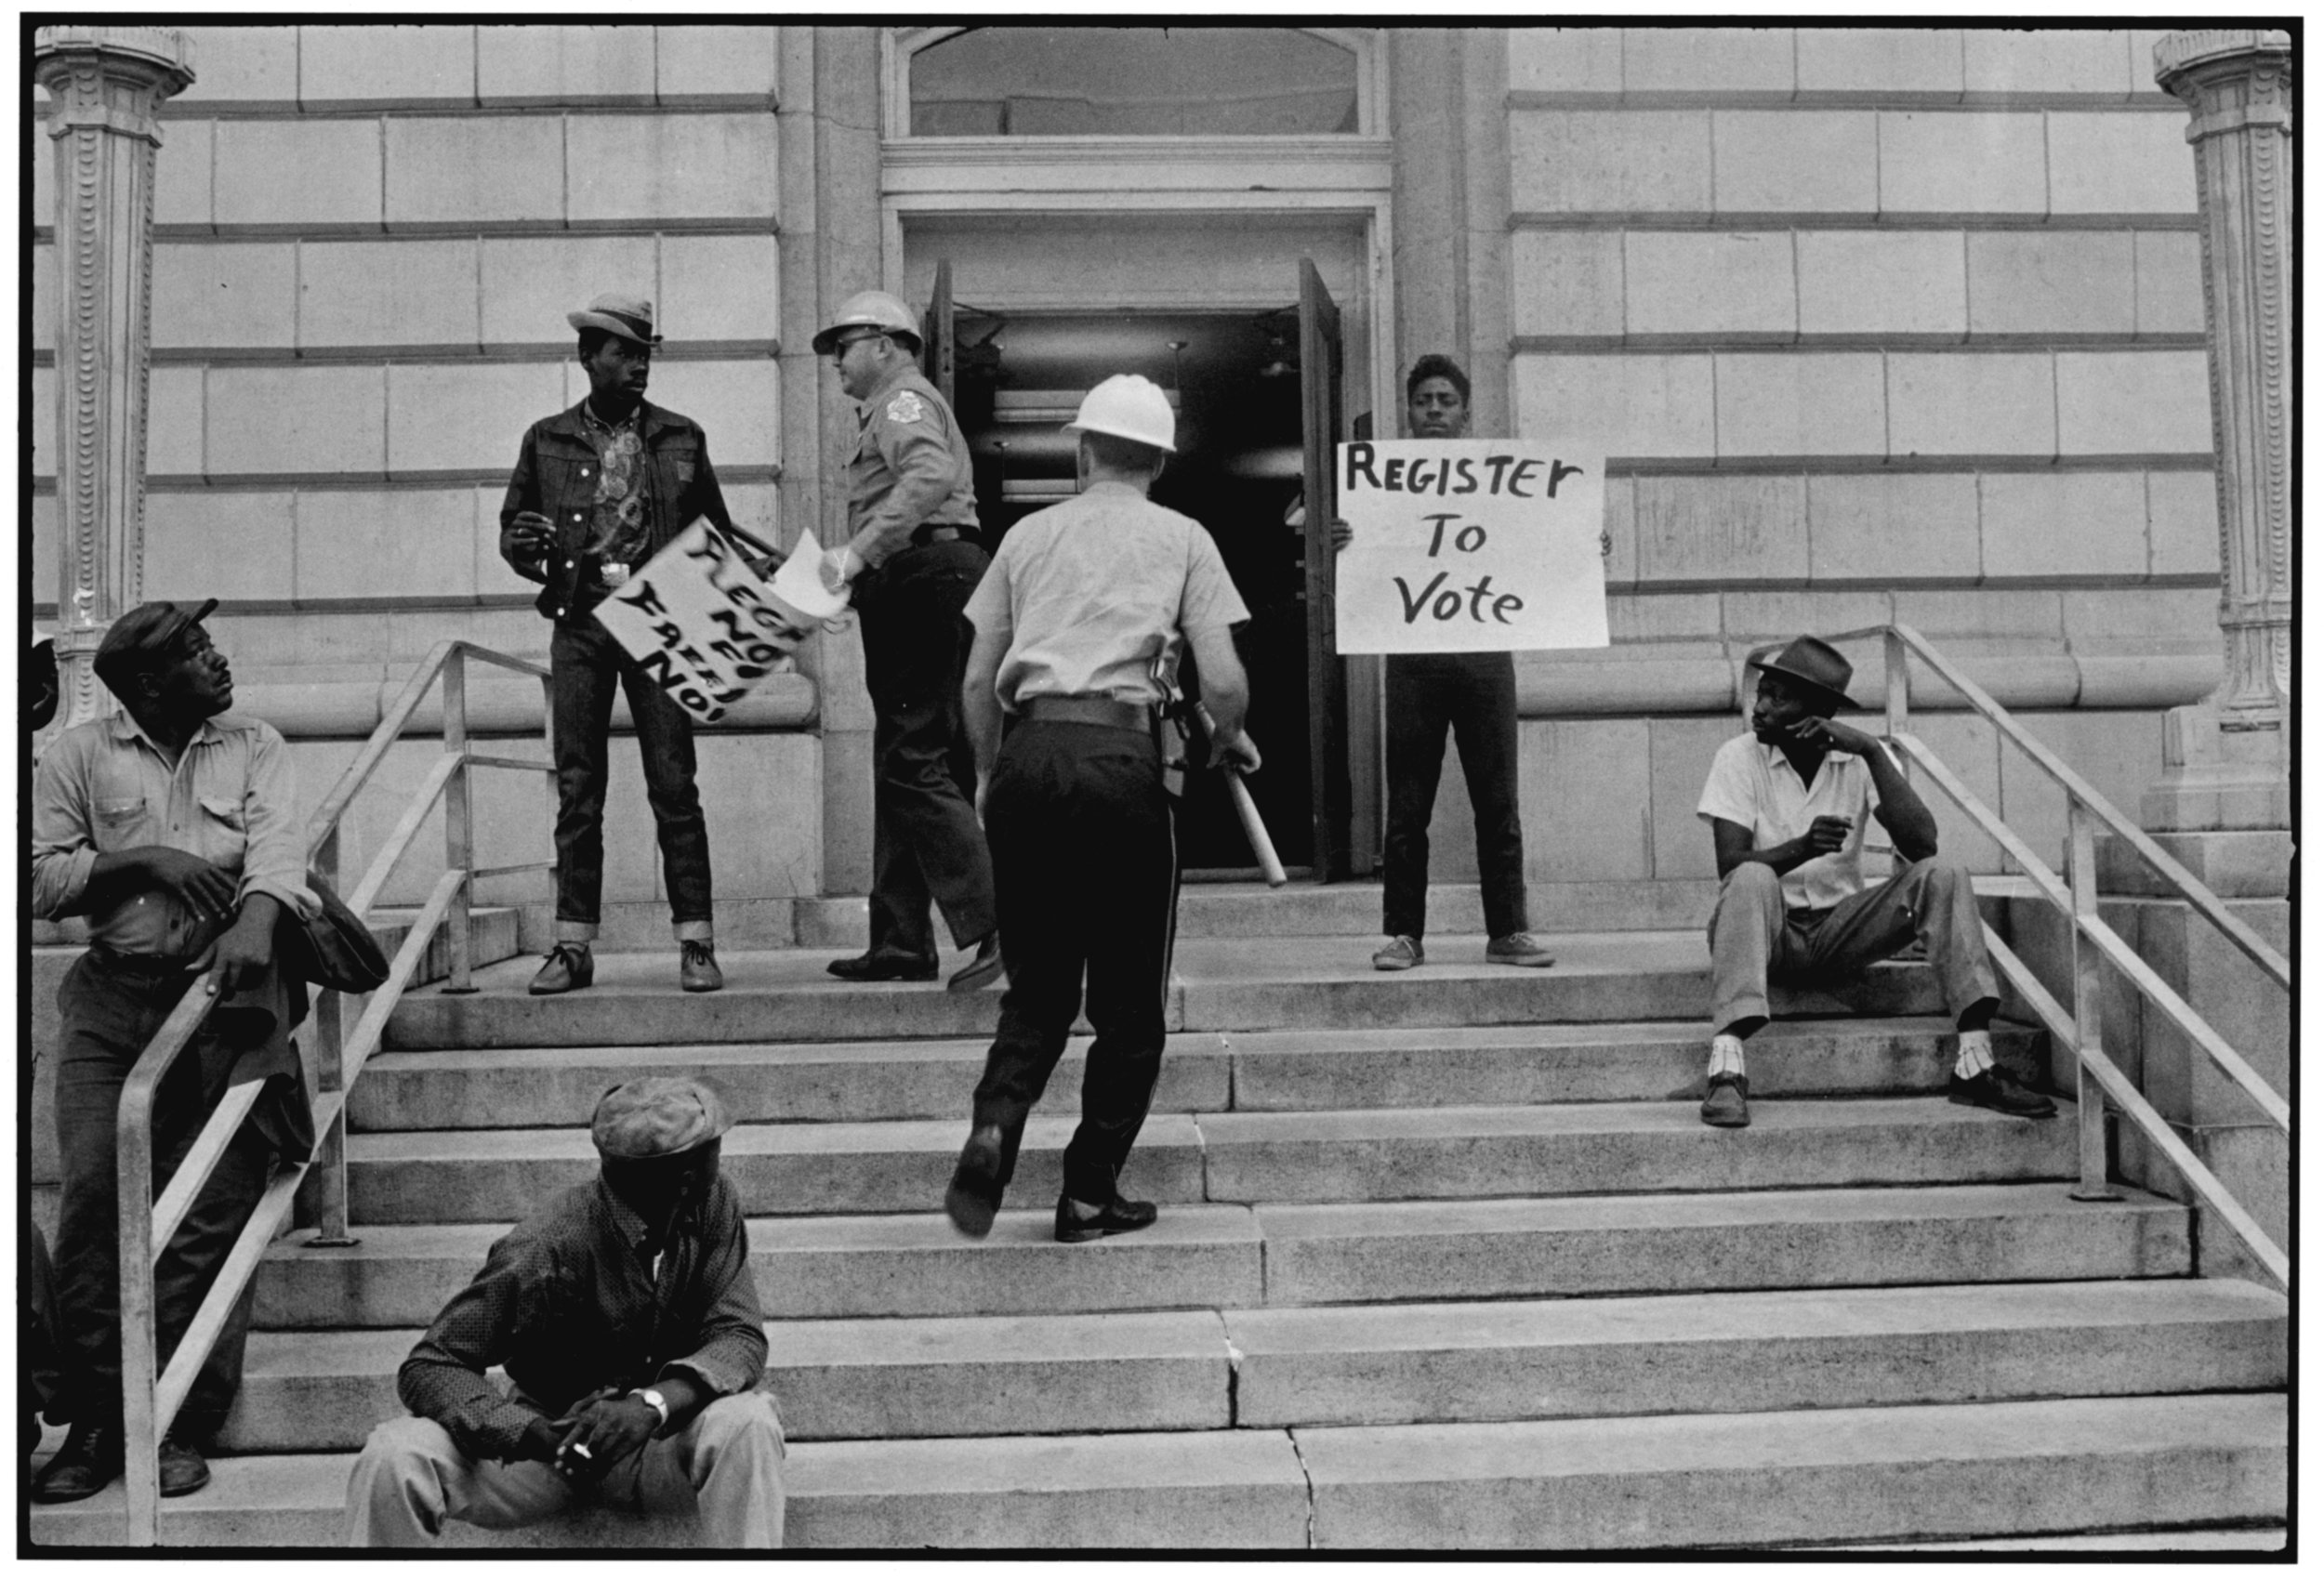 Sheriff Jim Clark arrests two demonstrators who displayed placards on the steps of the federal building in Selma in 1963. (© Danny Lyon, New York & Magnum Photos, New York / Courtesy Edwynn Houk Gallery, New York.)